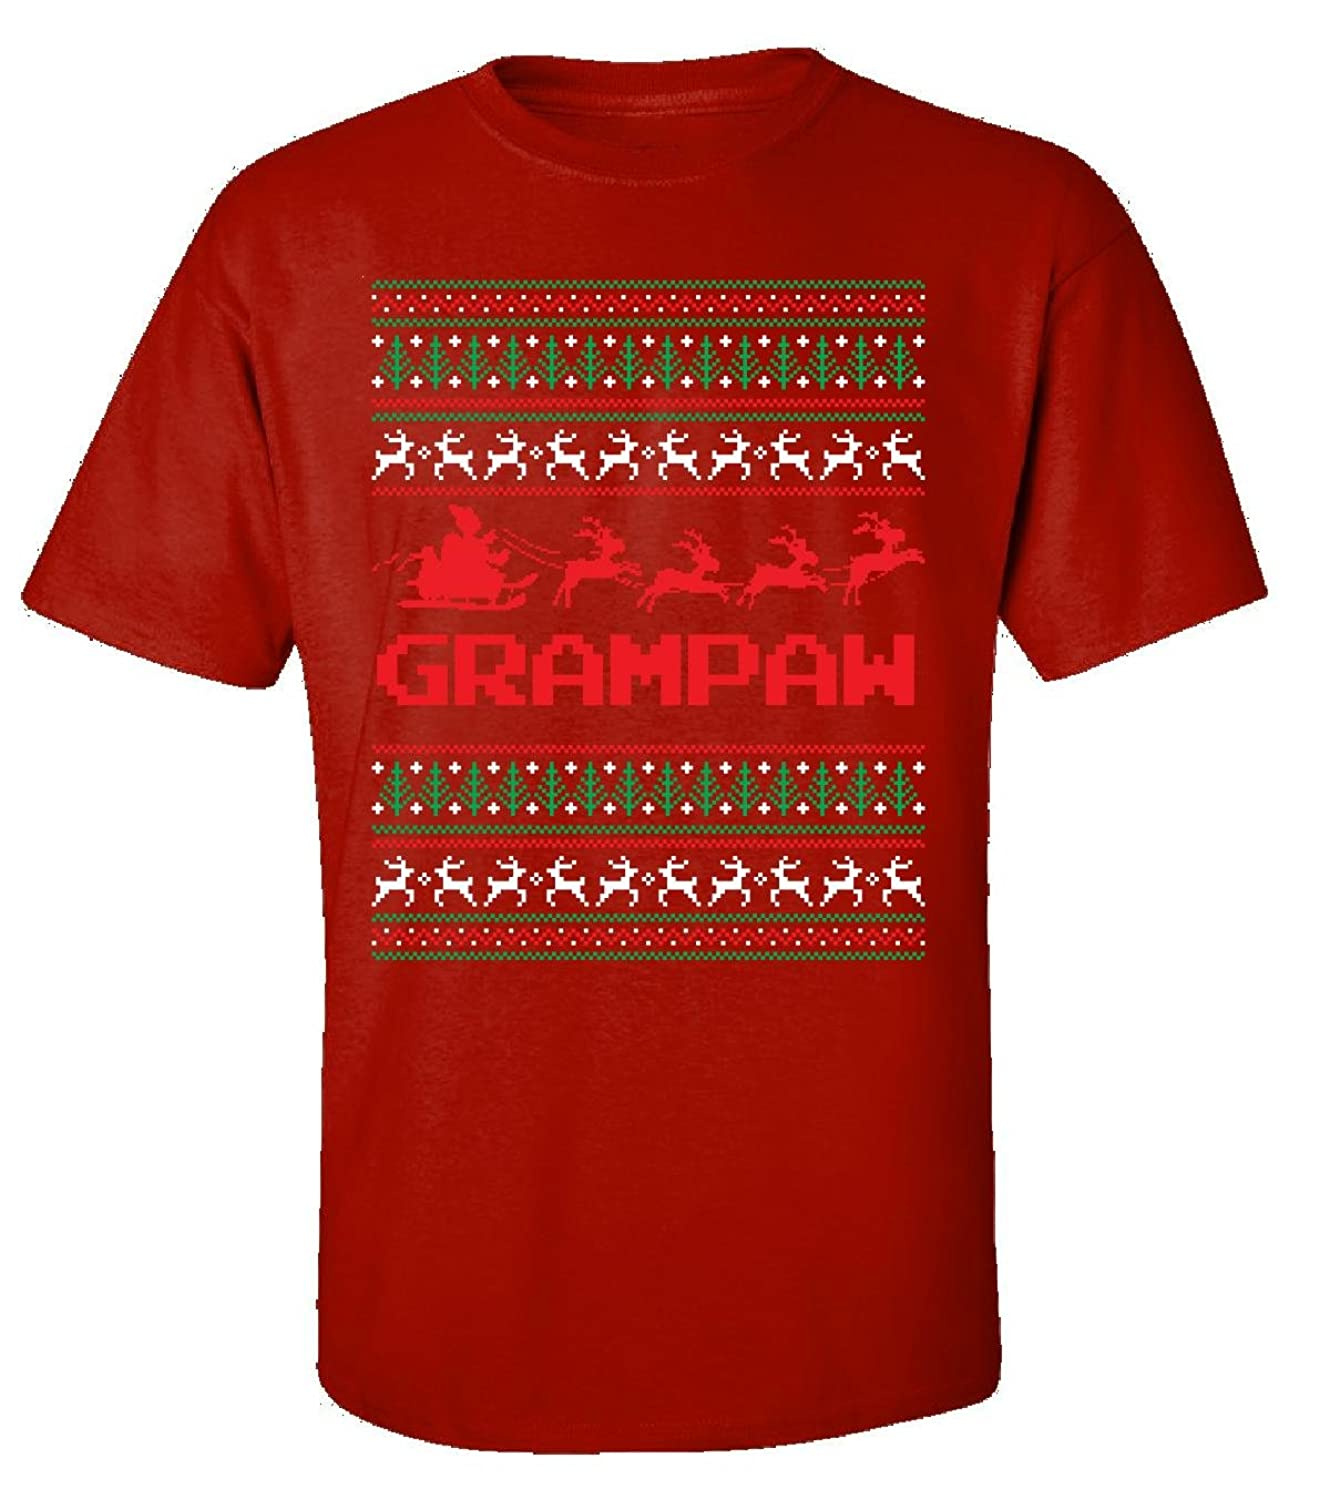 Christmas Best T Shirt Gift For Grampaw - Adult Shirt